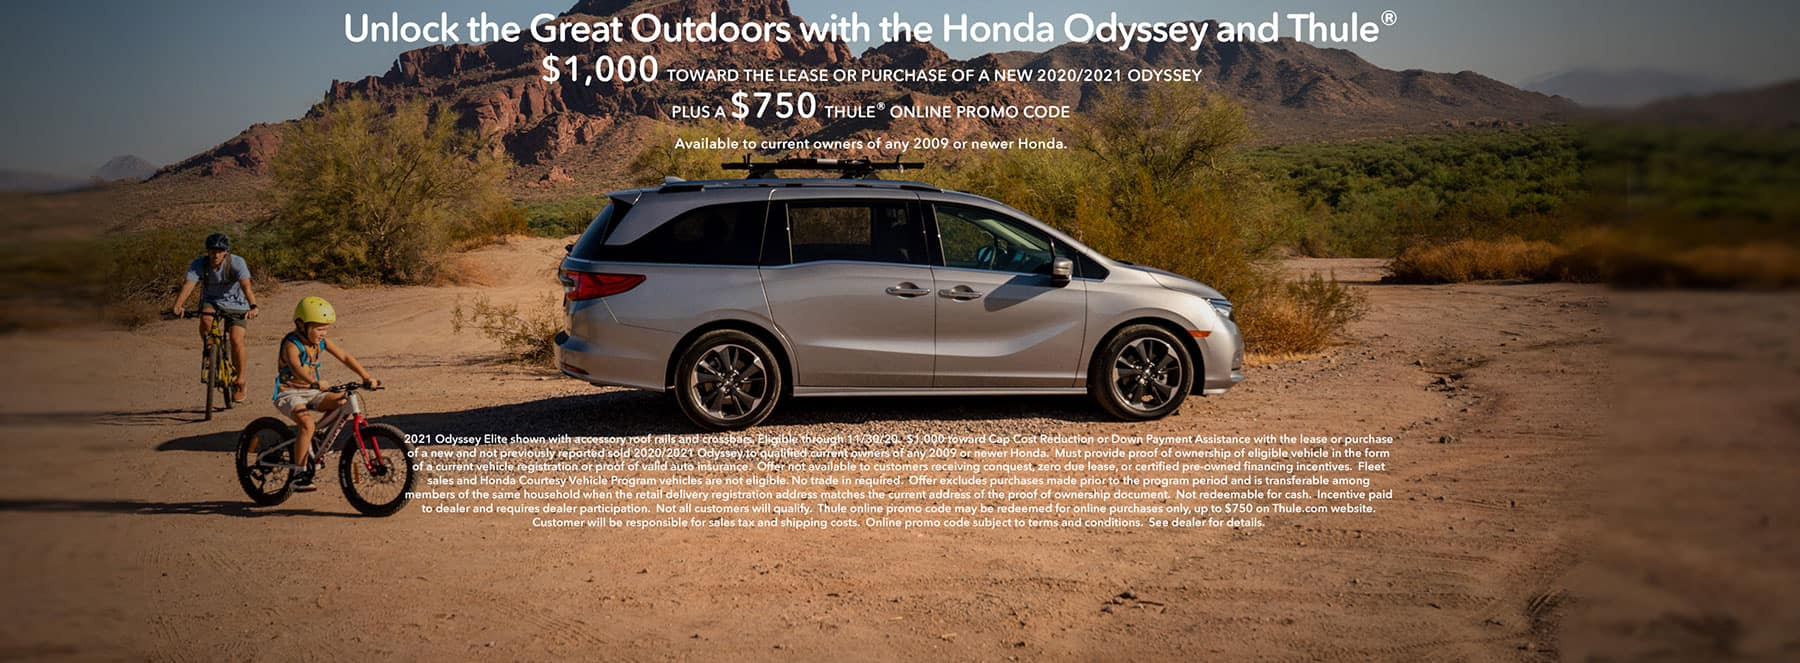 $1,000 towards the lease or purchase of a new 2020/2021 Odyssey Plus a $750 Thule Online Promo Code.